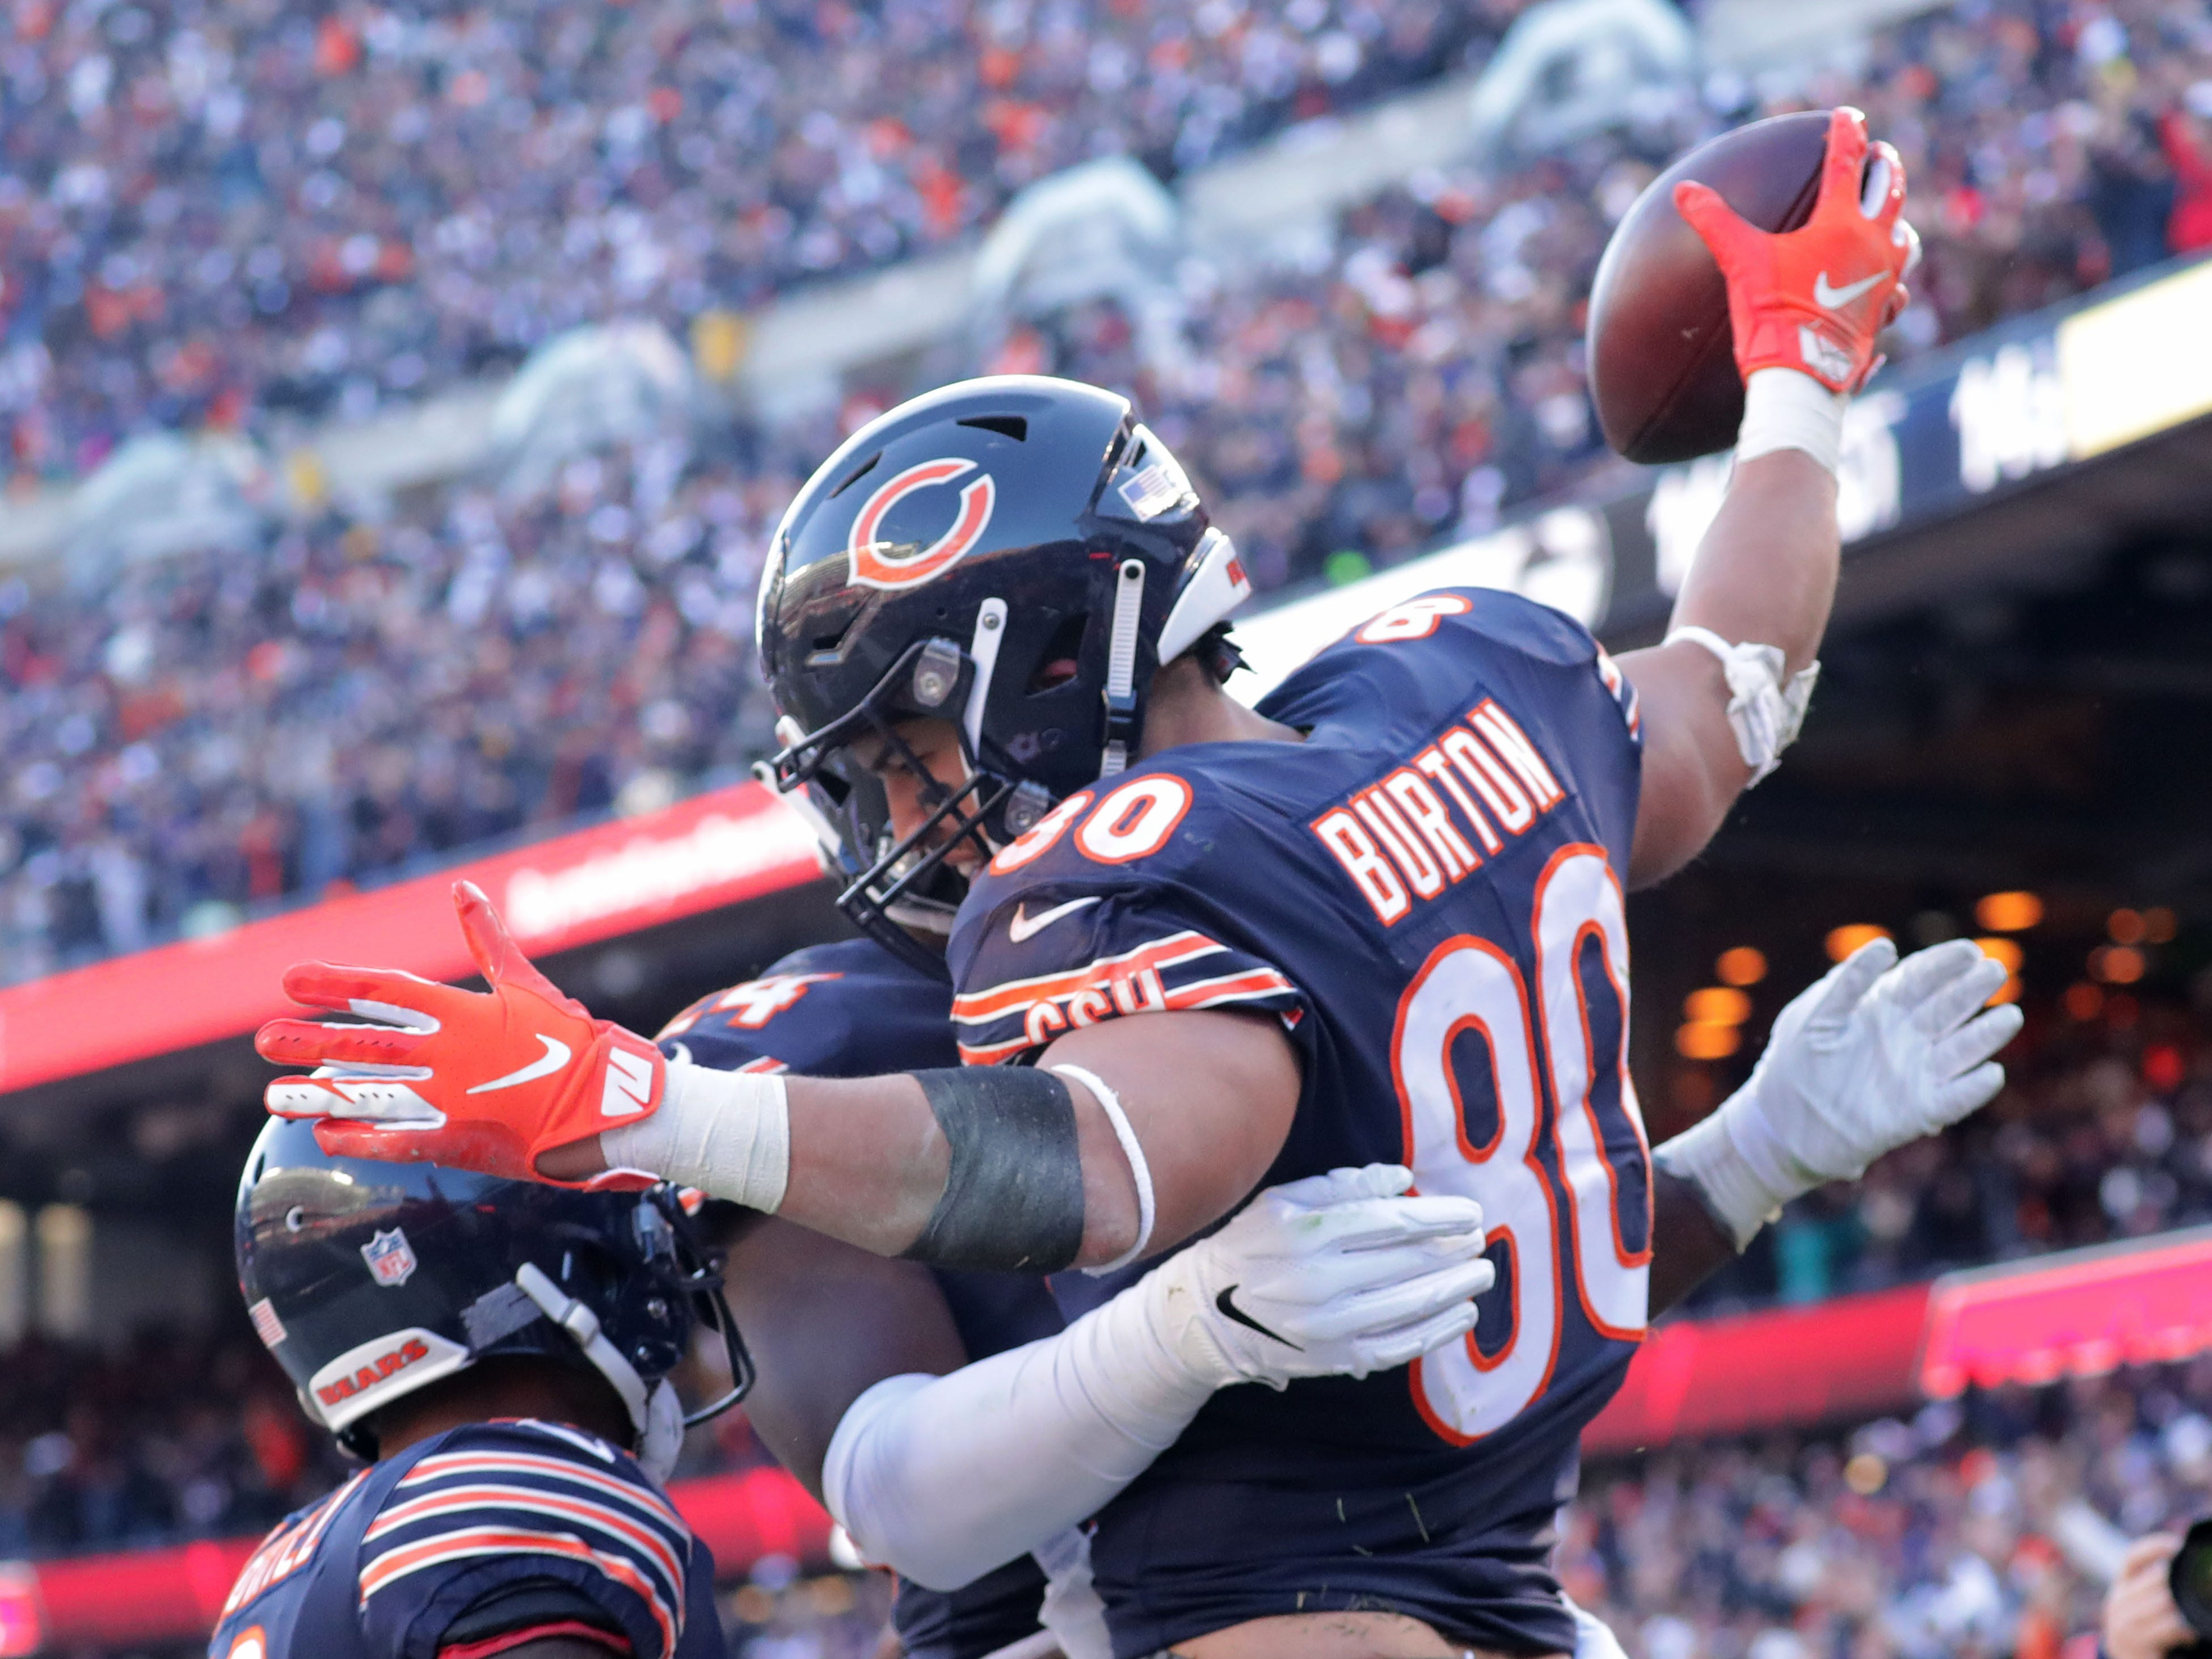 Chicago Bears' Trey Burton celebrates a touchdown during the 2nd half of the Green Bay Packers 24-17 loss to the Chicago Bears at Soldier Field Sunday, Dec. 16, 2018, in Chicago. Photo by Mike De Sisti / The Milwaukee Journal Sentinel